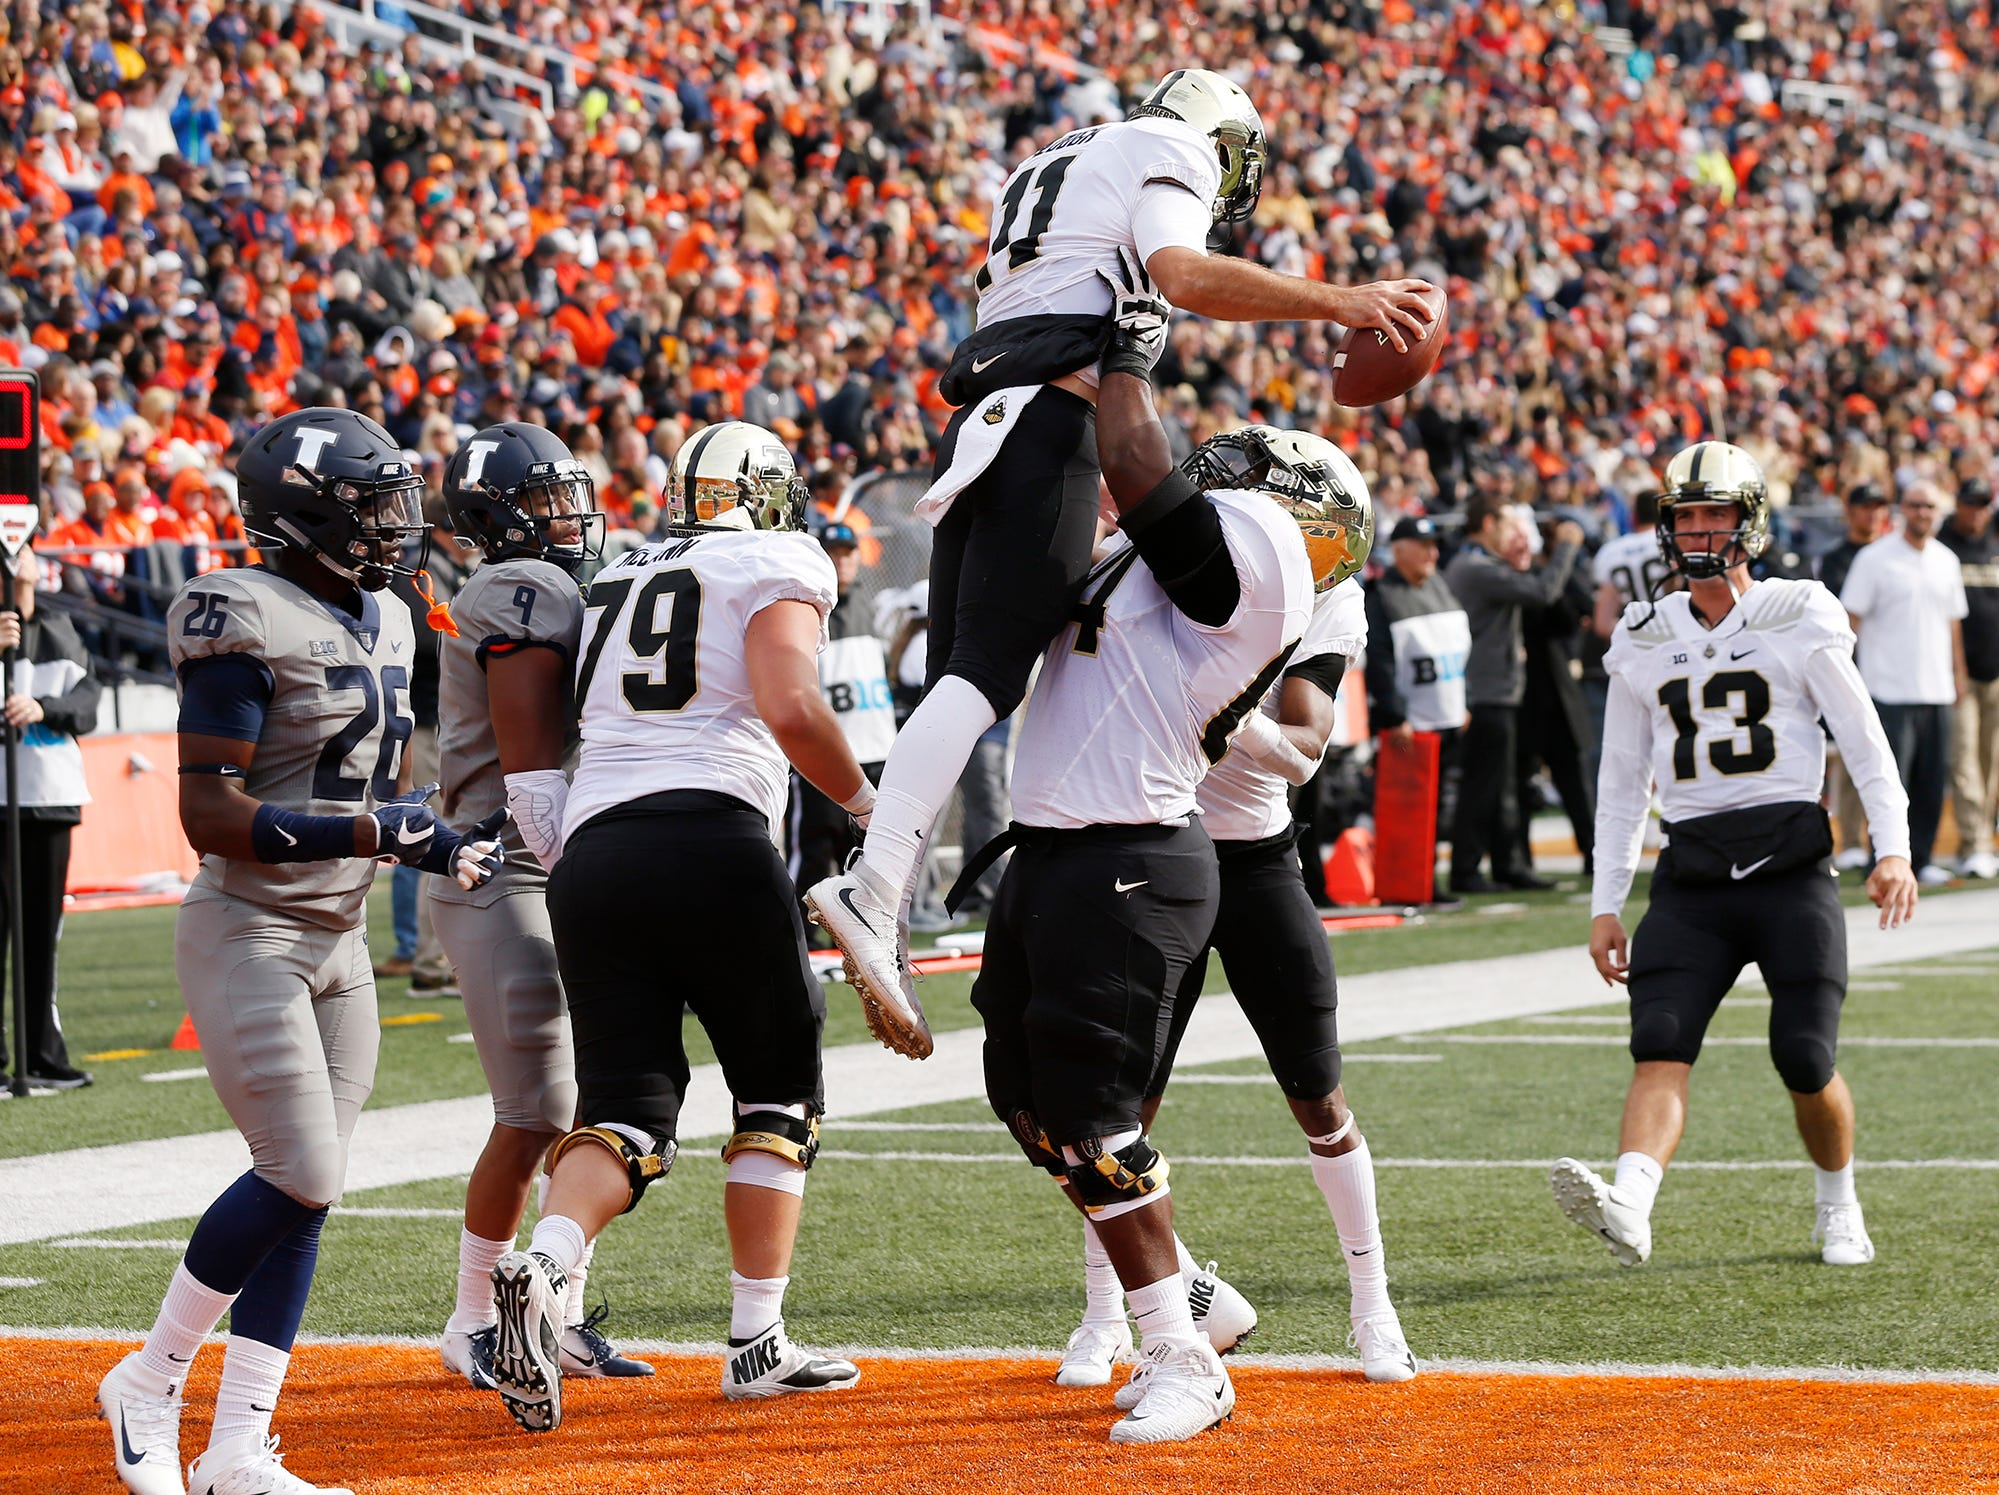 Dennis Edwards of Purdue lifts teammate David Blough into the air after Blough's touchdown reception at 4:06 in the first quarter against Illinois Saturday, October 13, 2018, in Champaign, Illinois. Purdue pounded Illinois 46-7.